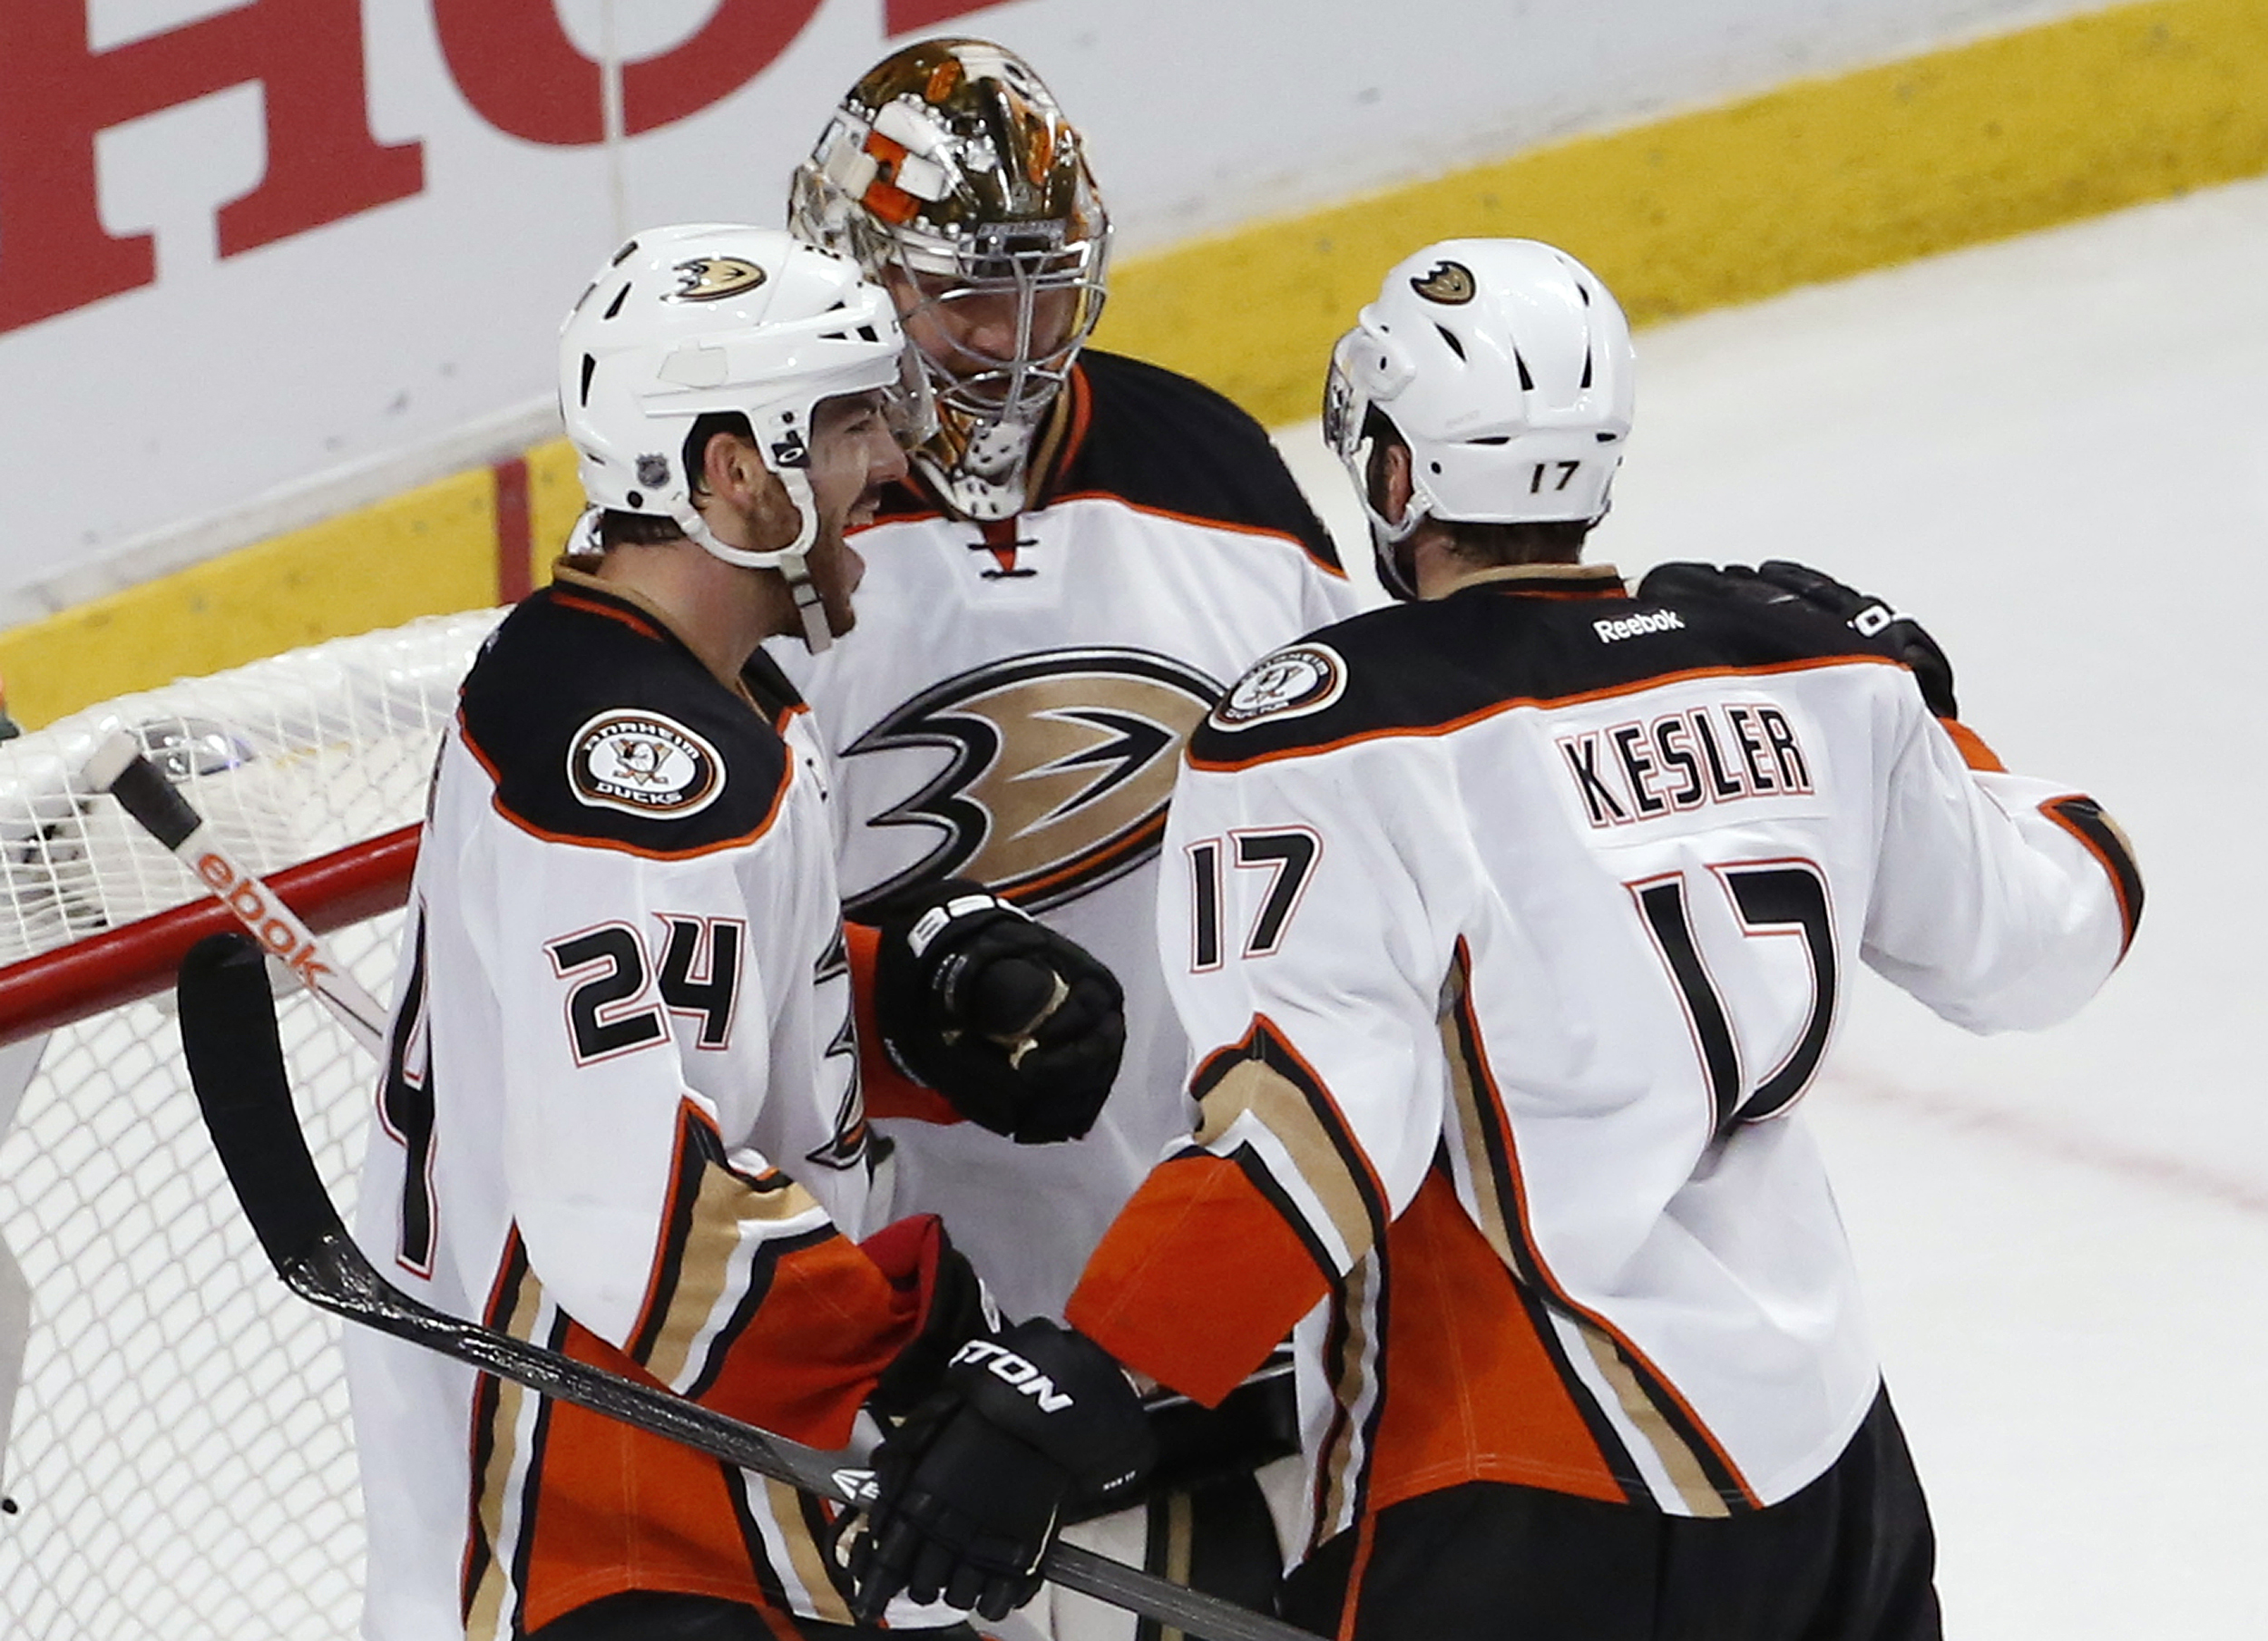 Anaheim Ducks defenseman Simon Despres (24) and center Ryan Kesler (17) celebrate with goalie Frederik Andersen after Game 3 of the Western Conference finals against the Chicago Blackhawks in the NHL hockey Stanley Cup playoffs, Thursday, May 21, 2015, in